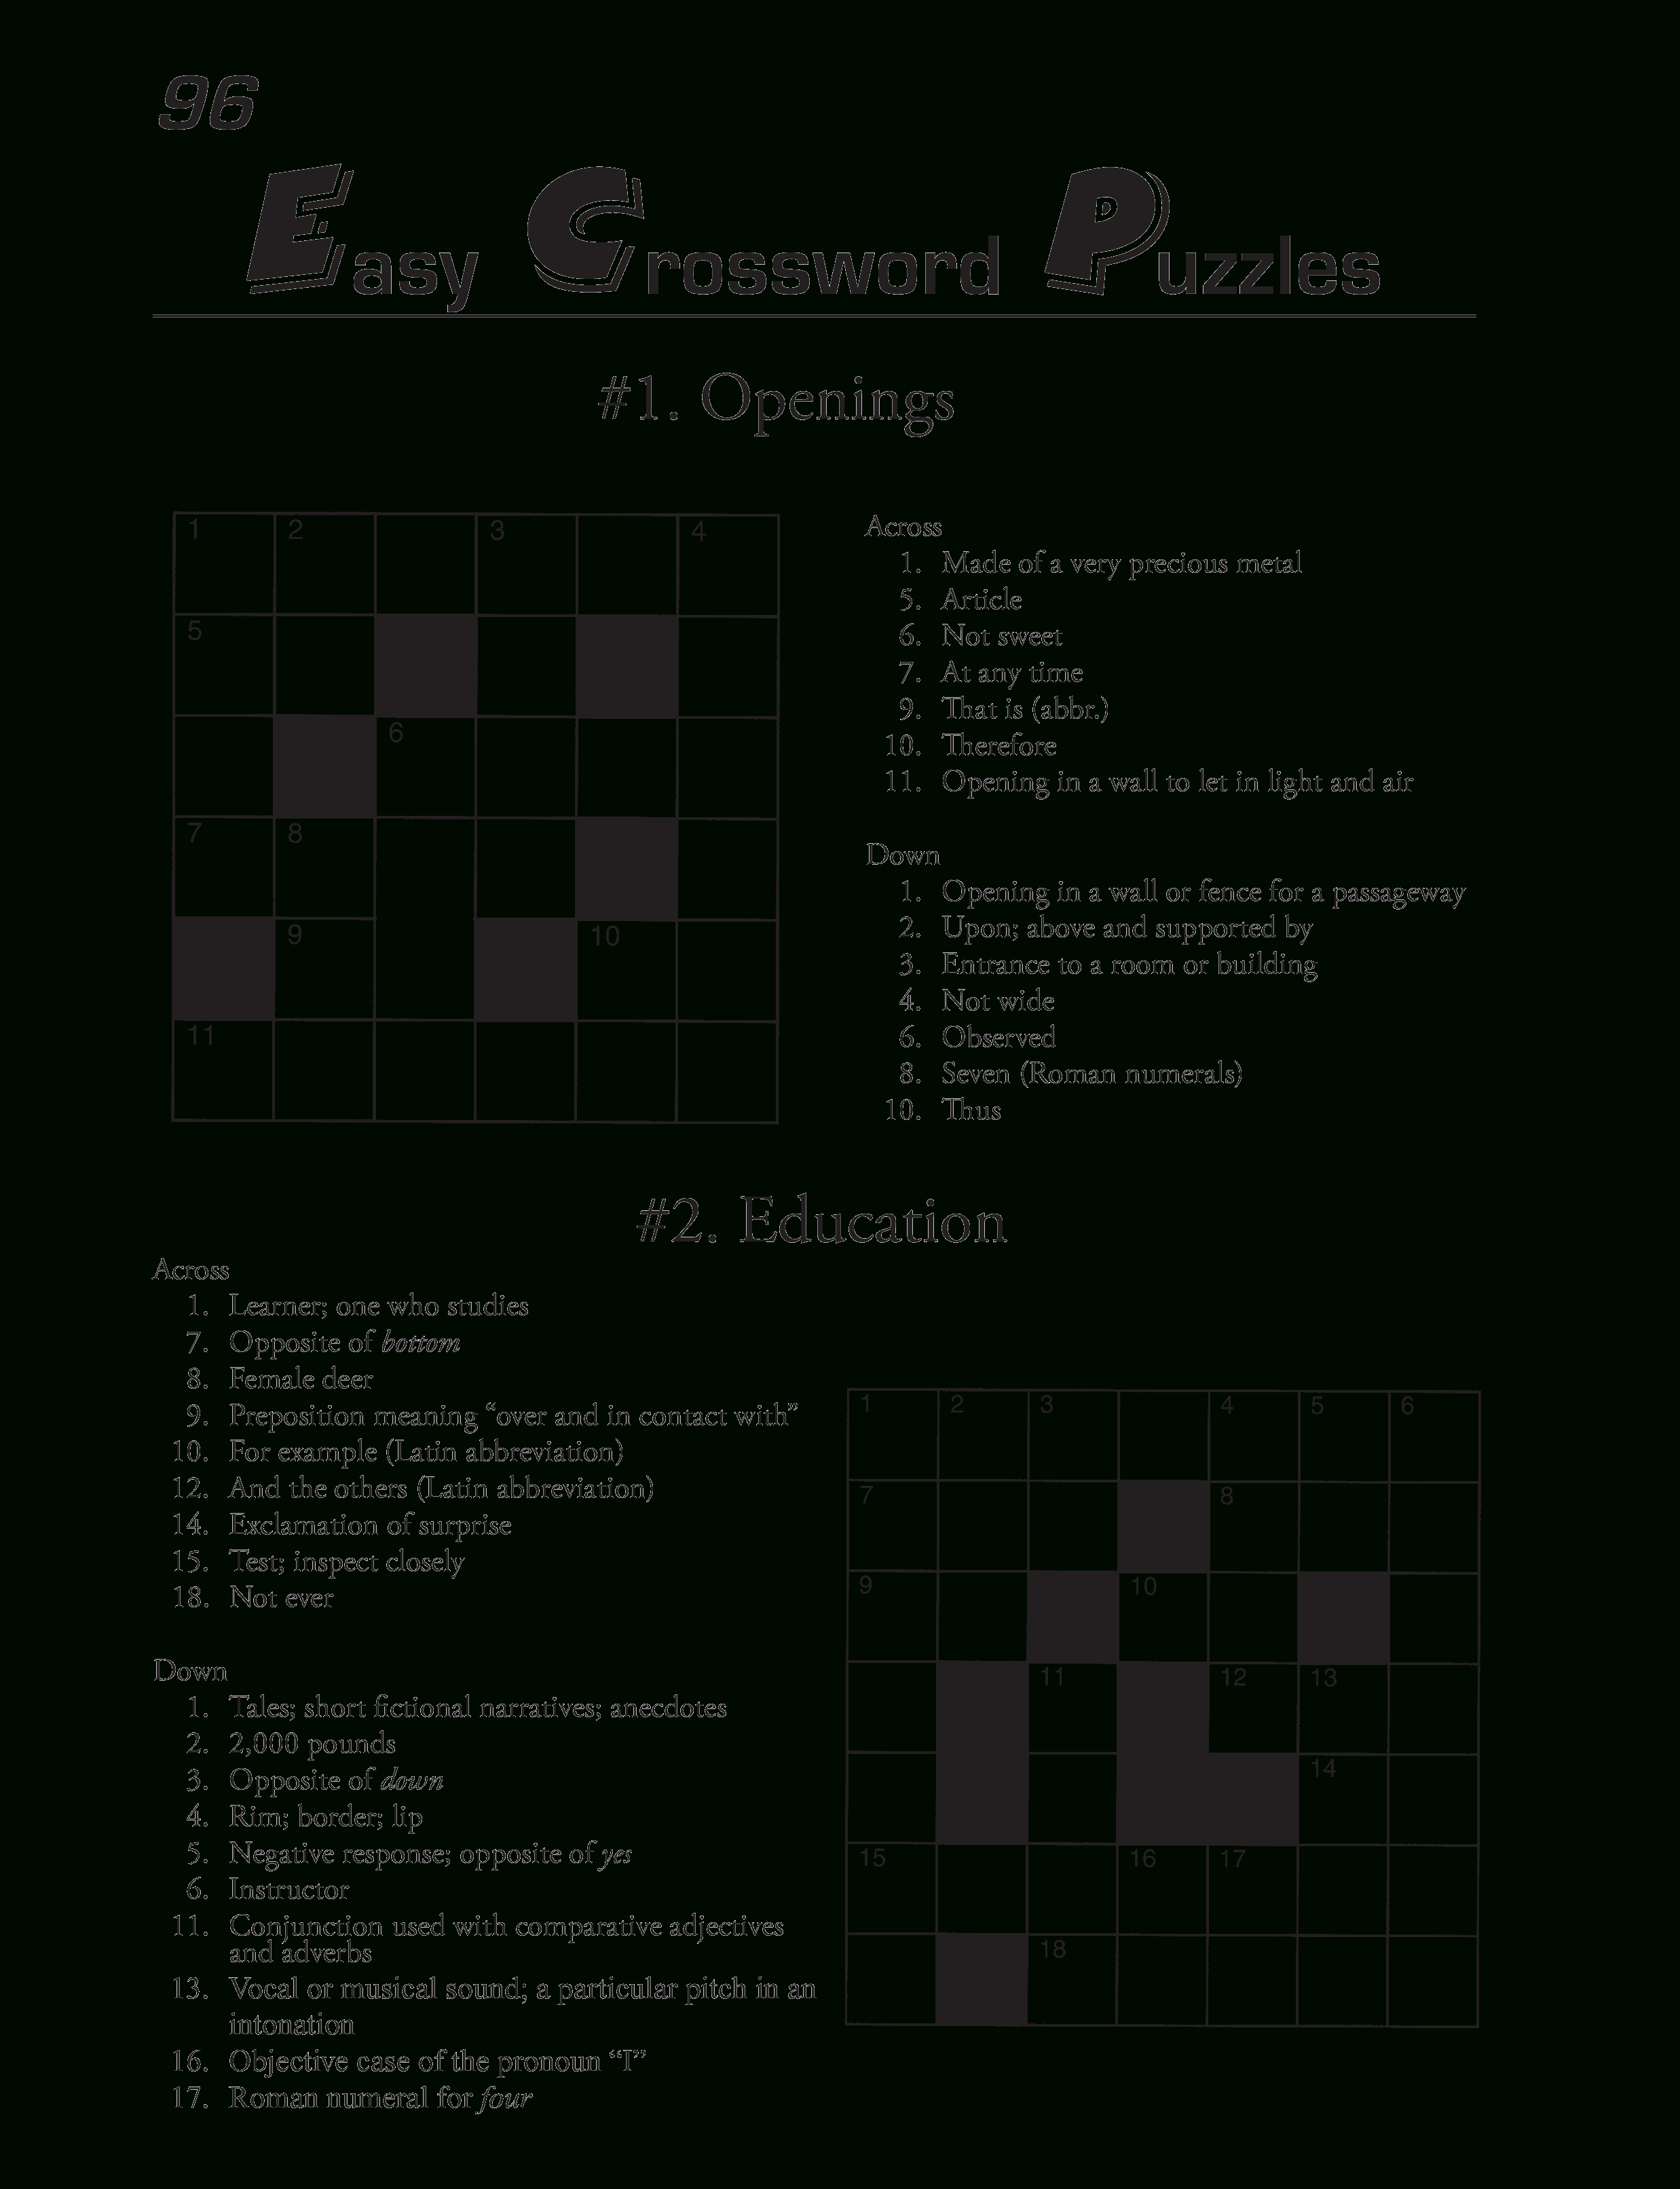 Printable Crossword Puzzles Template | Templates At - Printable Blank Crossword